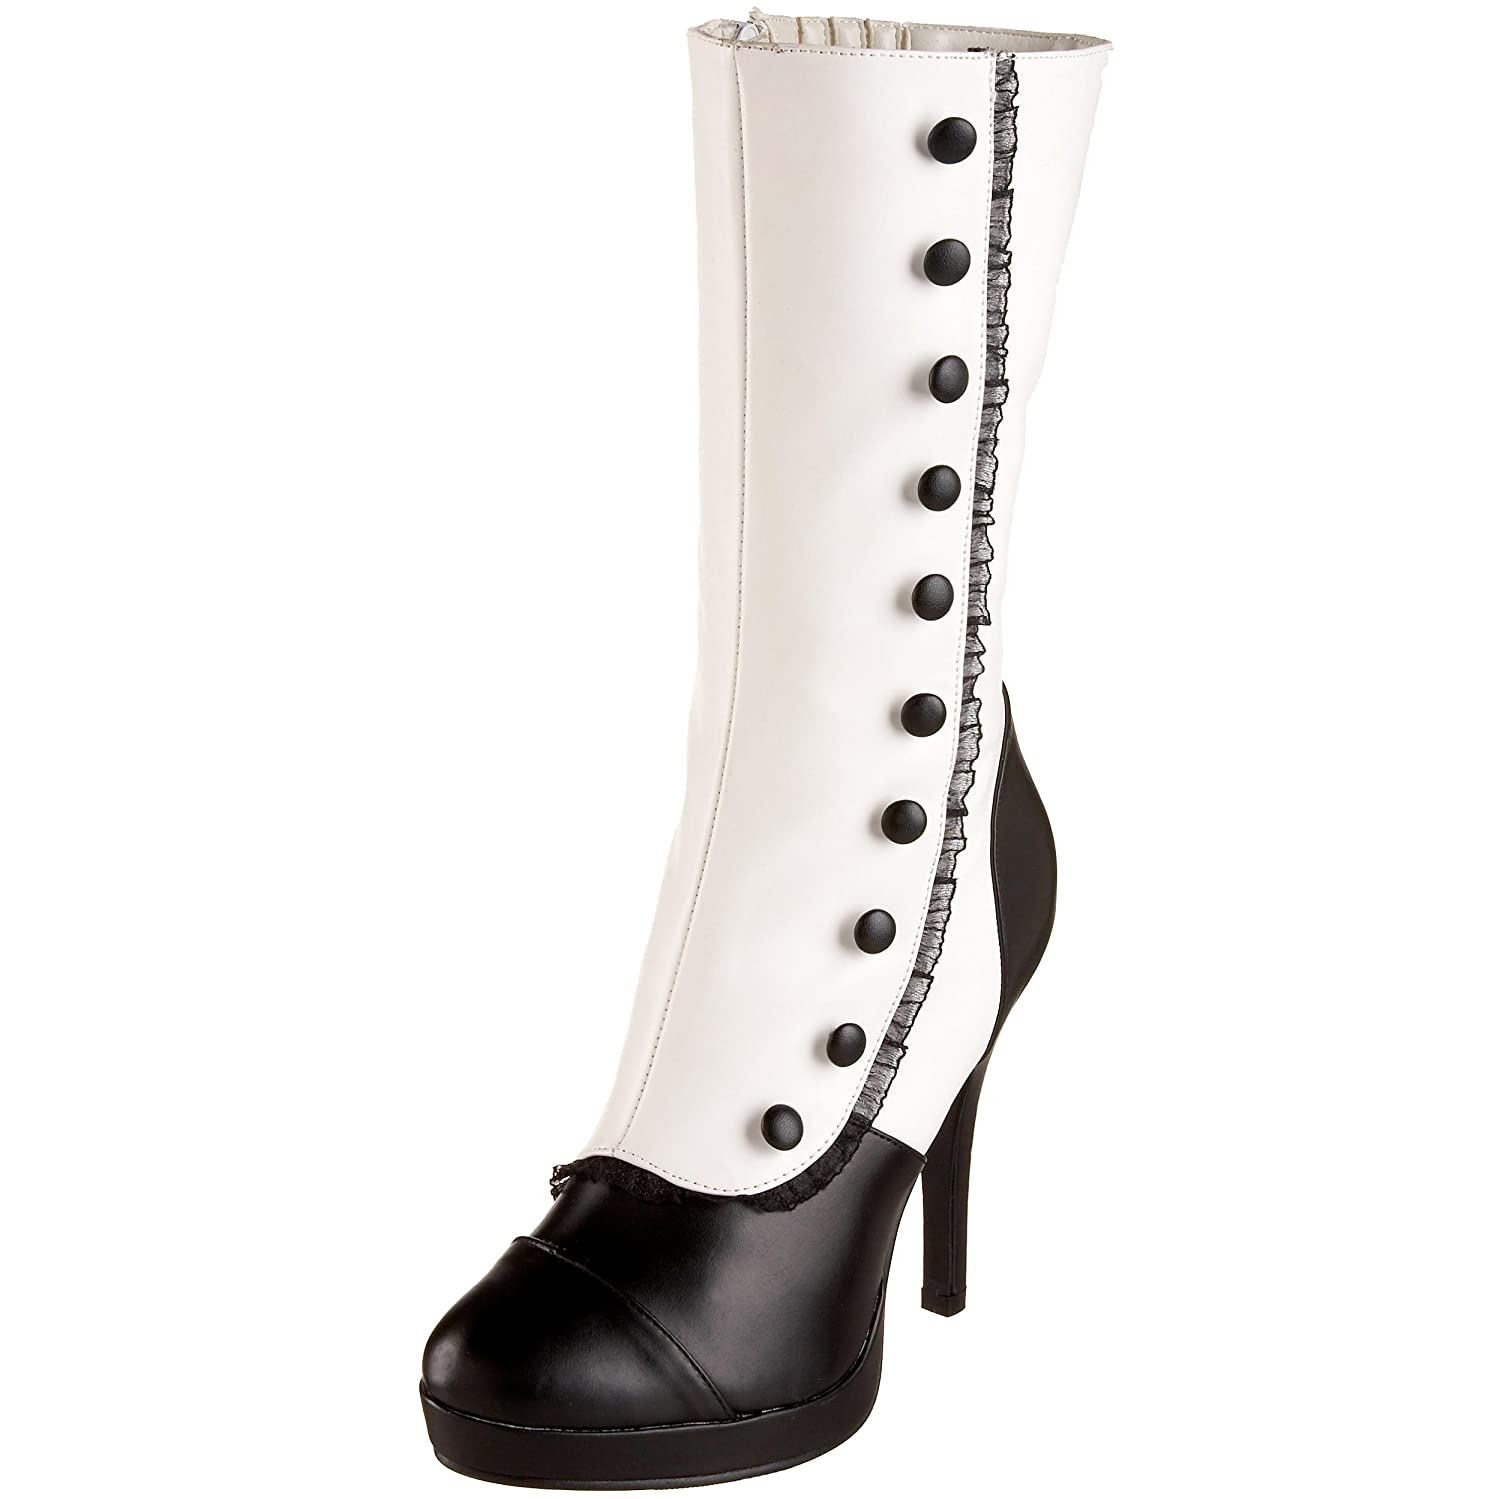 Ladies Victorian Boots & Shoes Womens Splendor-130 Mid-Calf Boot $126.63 AT vintagedancer.com